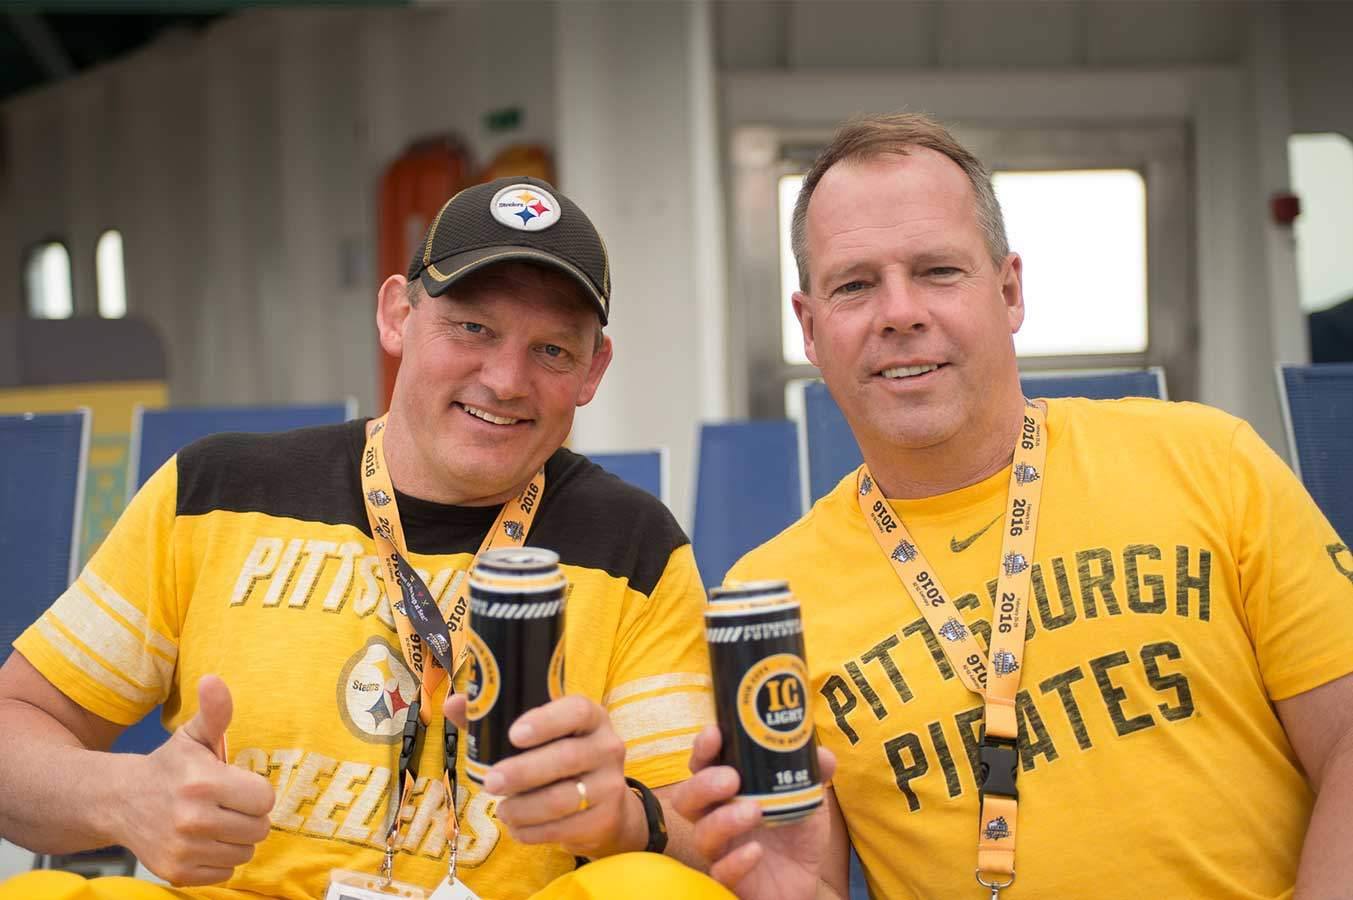 10_2016_legends_of_pittsburgh_cruise_photo